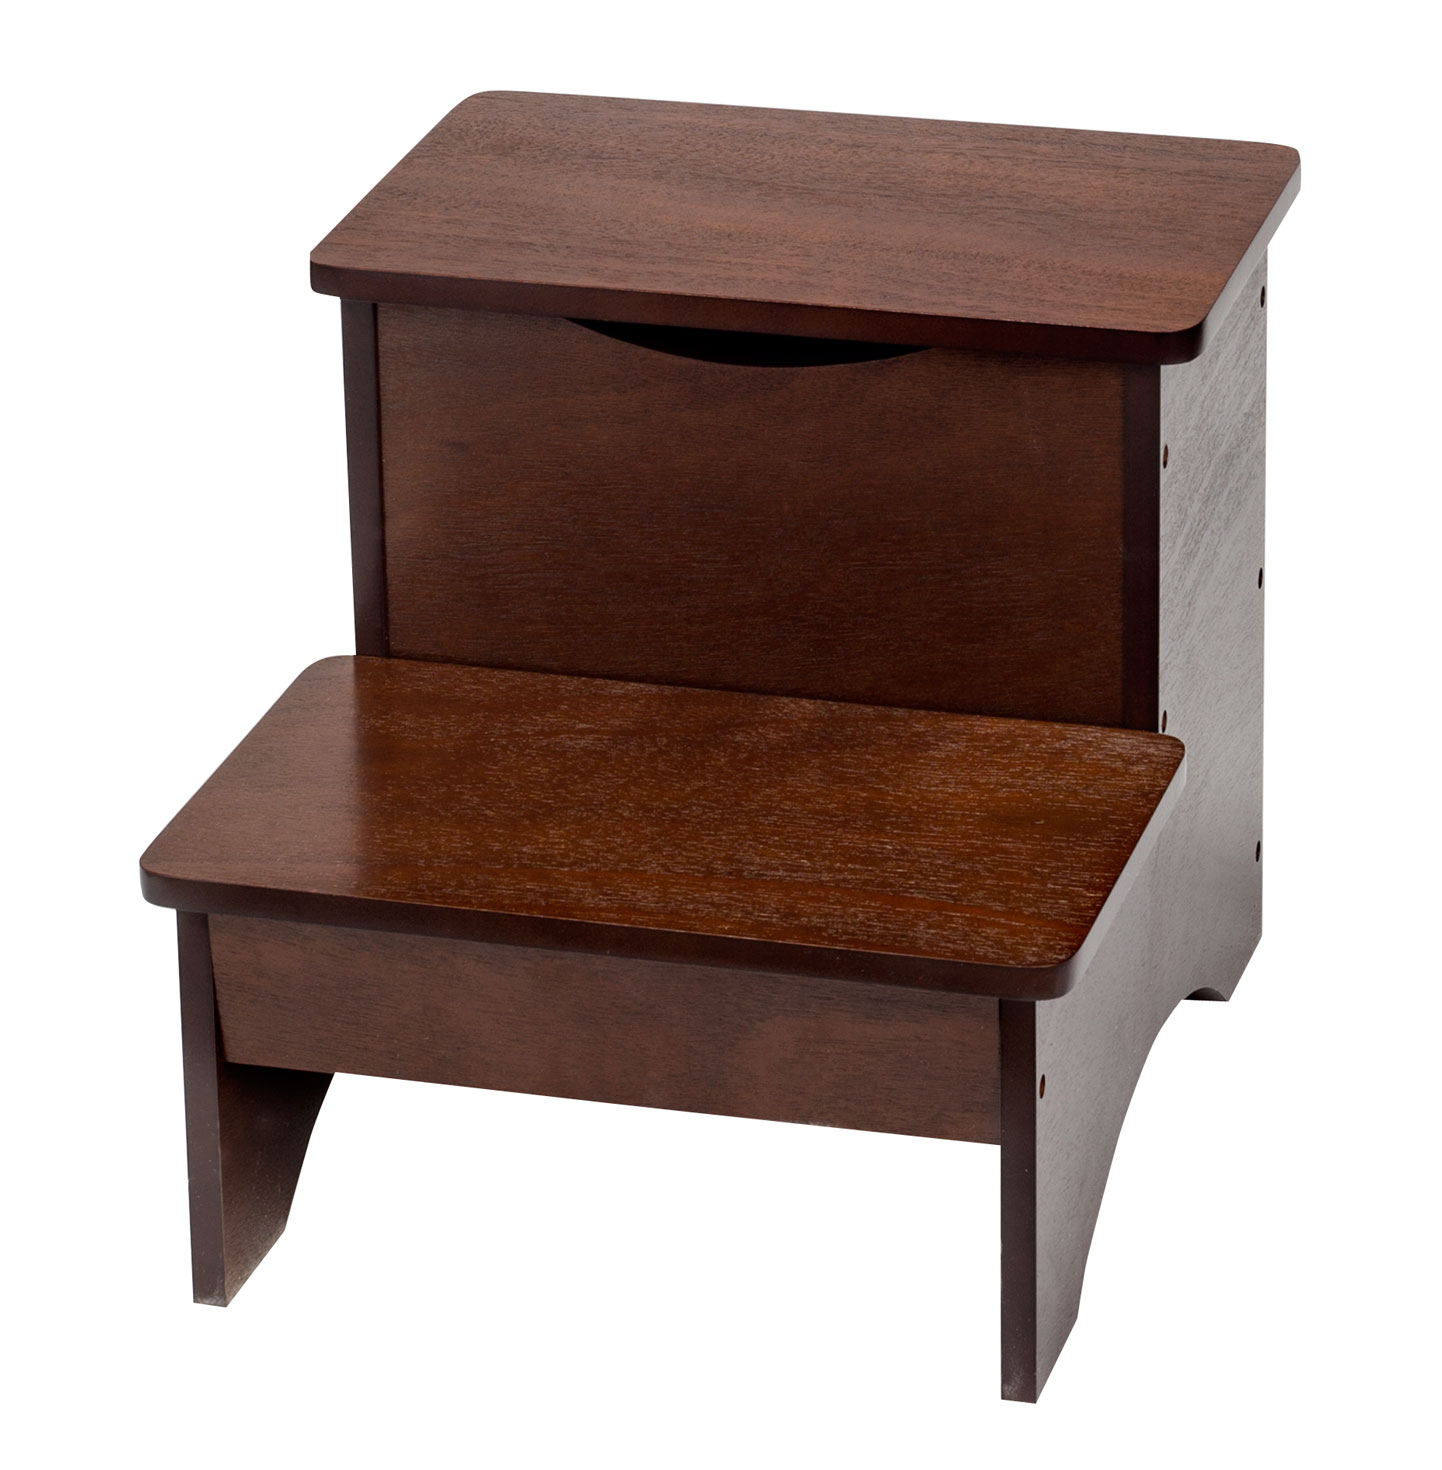 Wooden Step Stool with Storage by OakRidgeTM Walmart